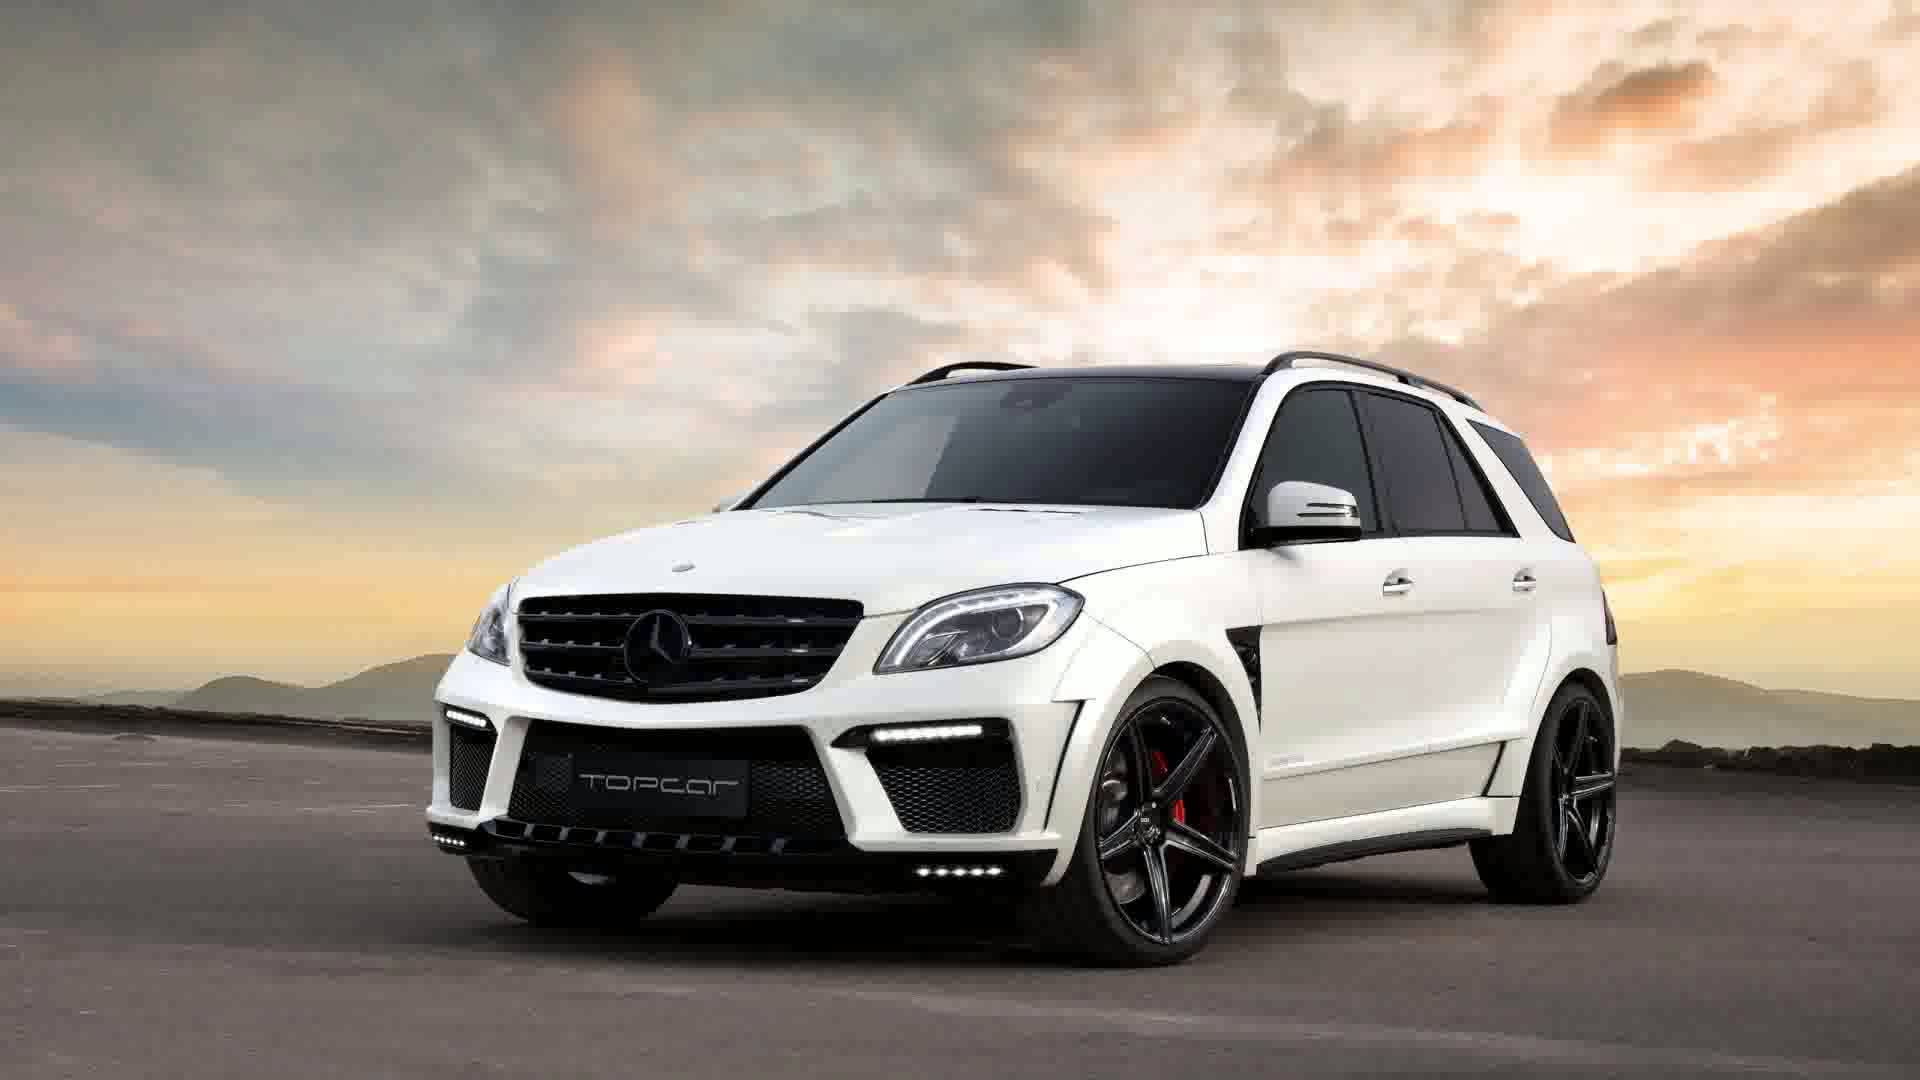 Mercedes benz m class ml63 amg 2015 suv drive for Mercedes benz glk amg